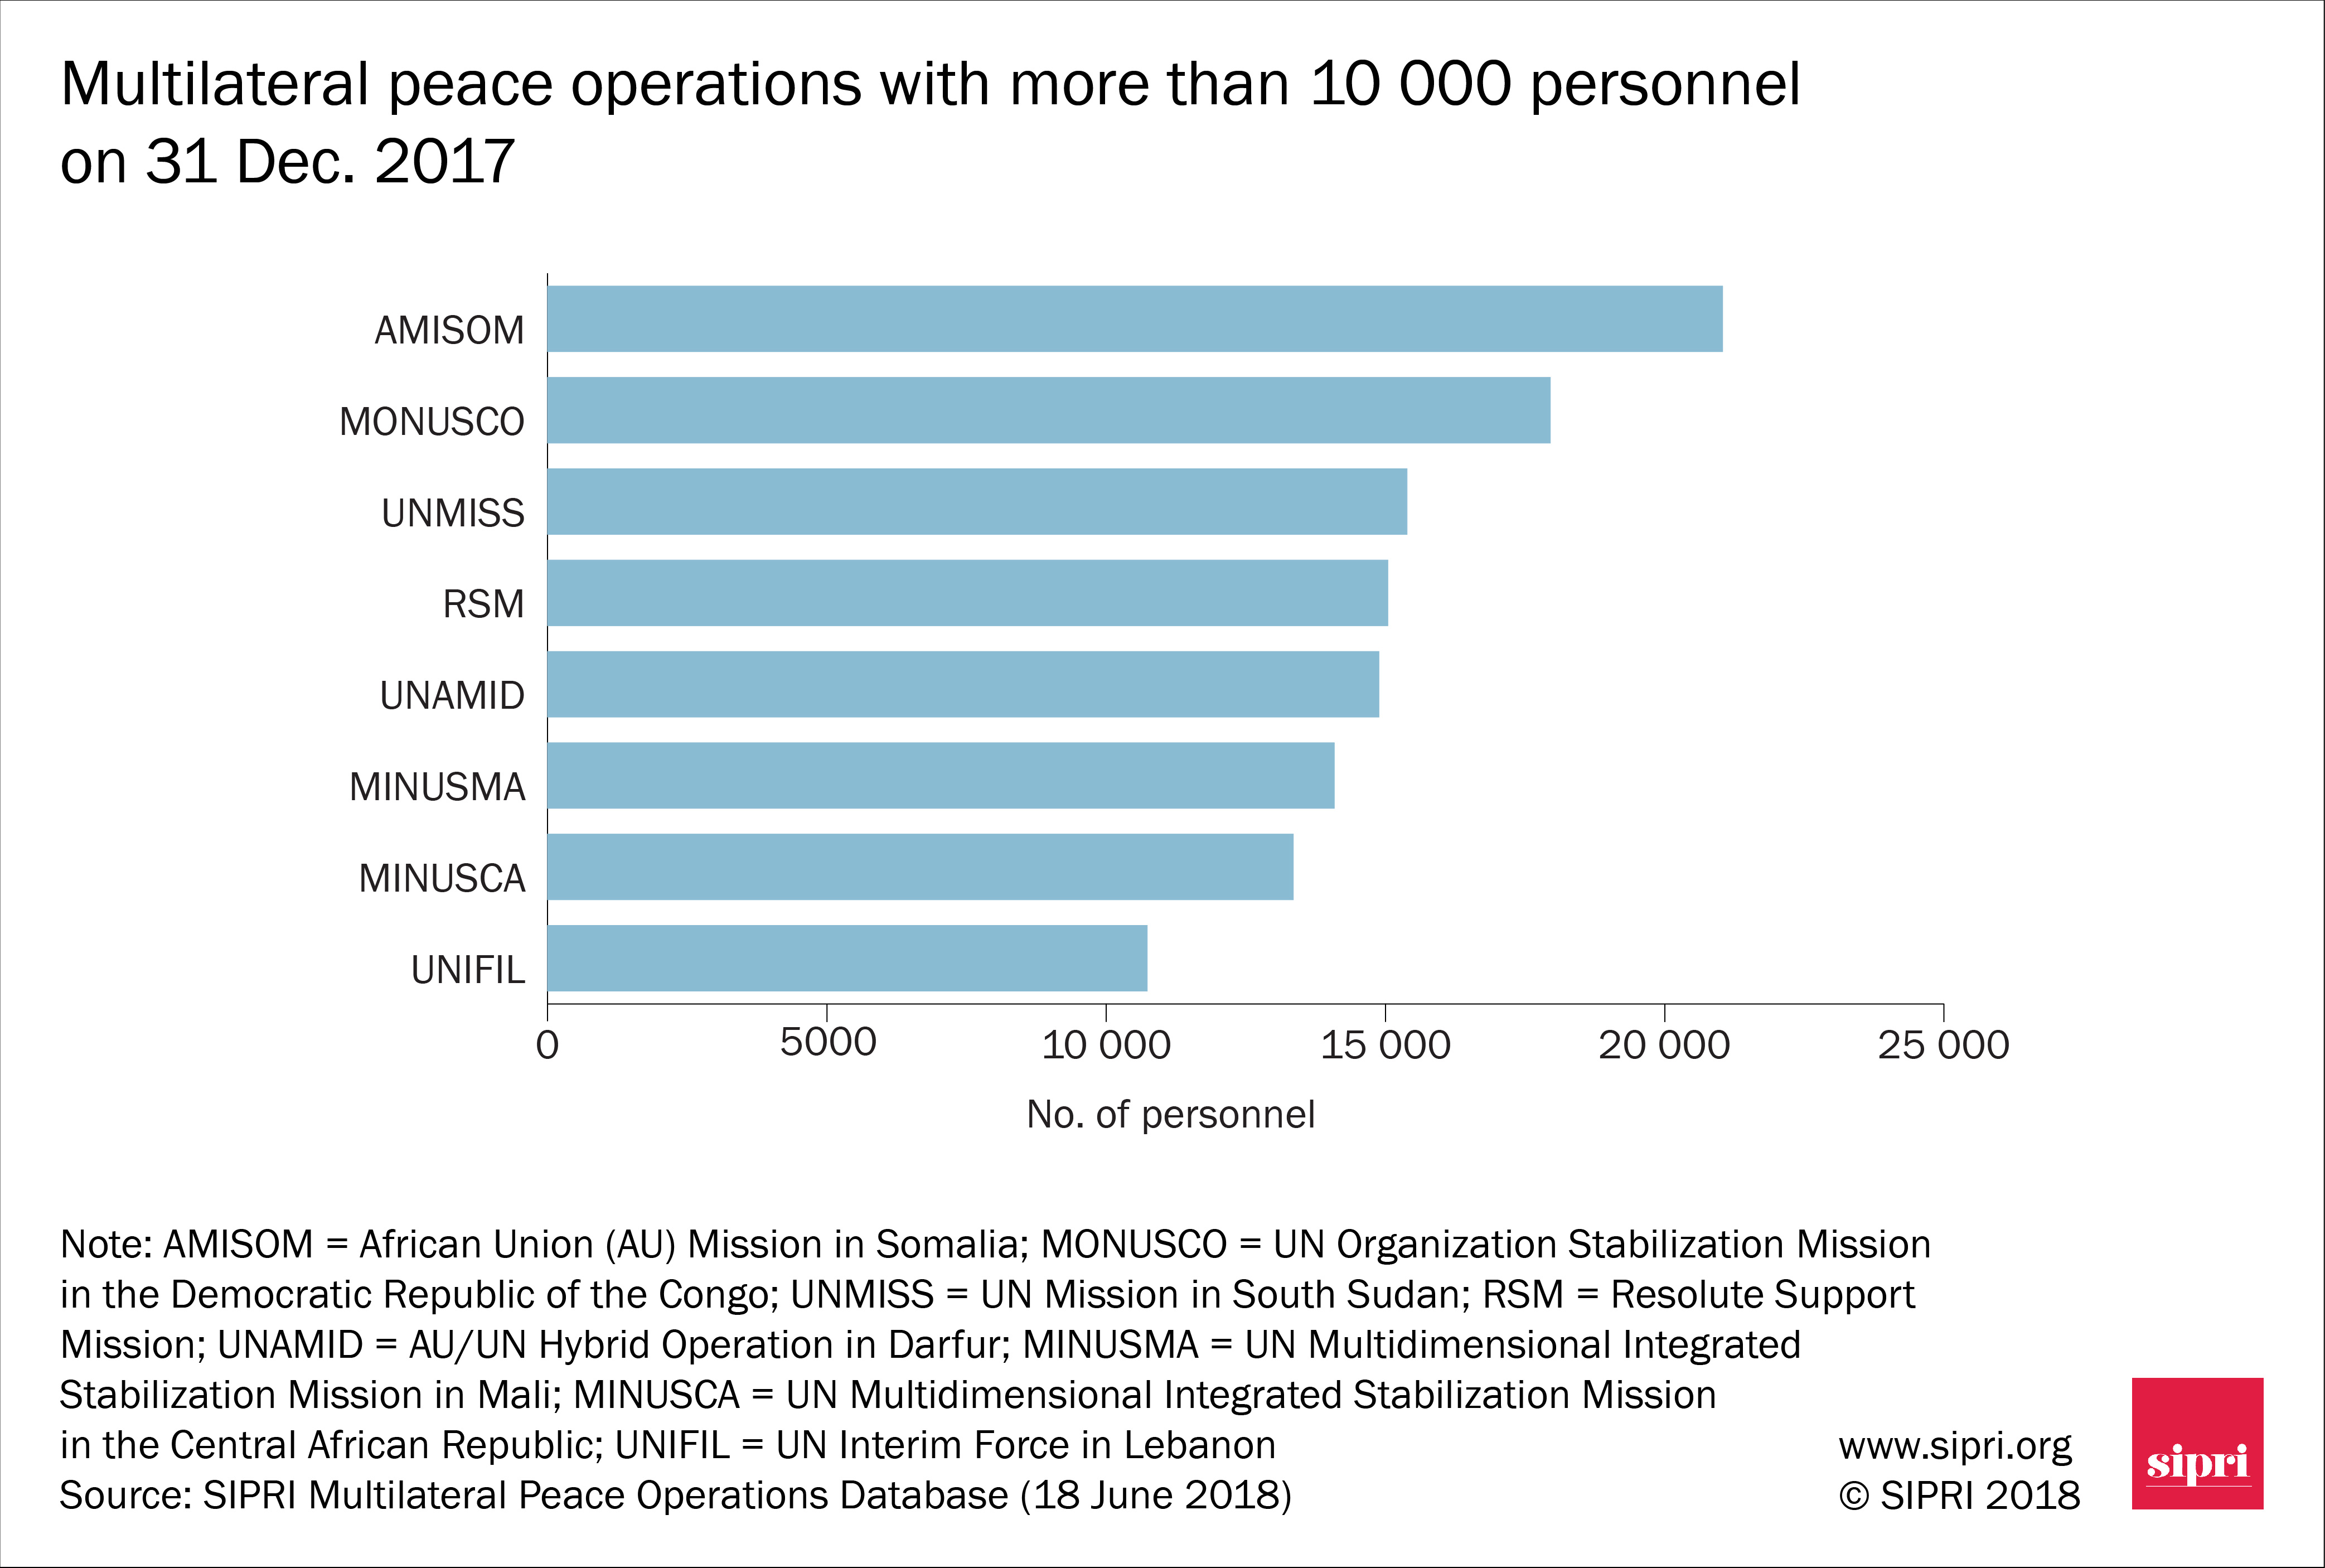 Multilateral peace operations with more than 10 000 personnel on 31 Dec. 2017